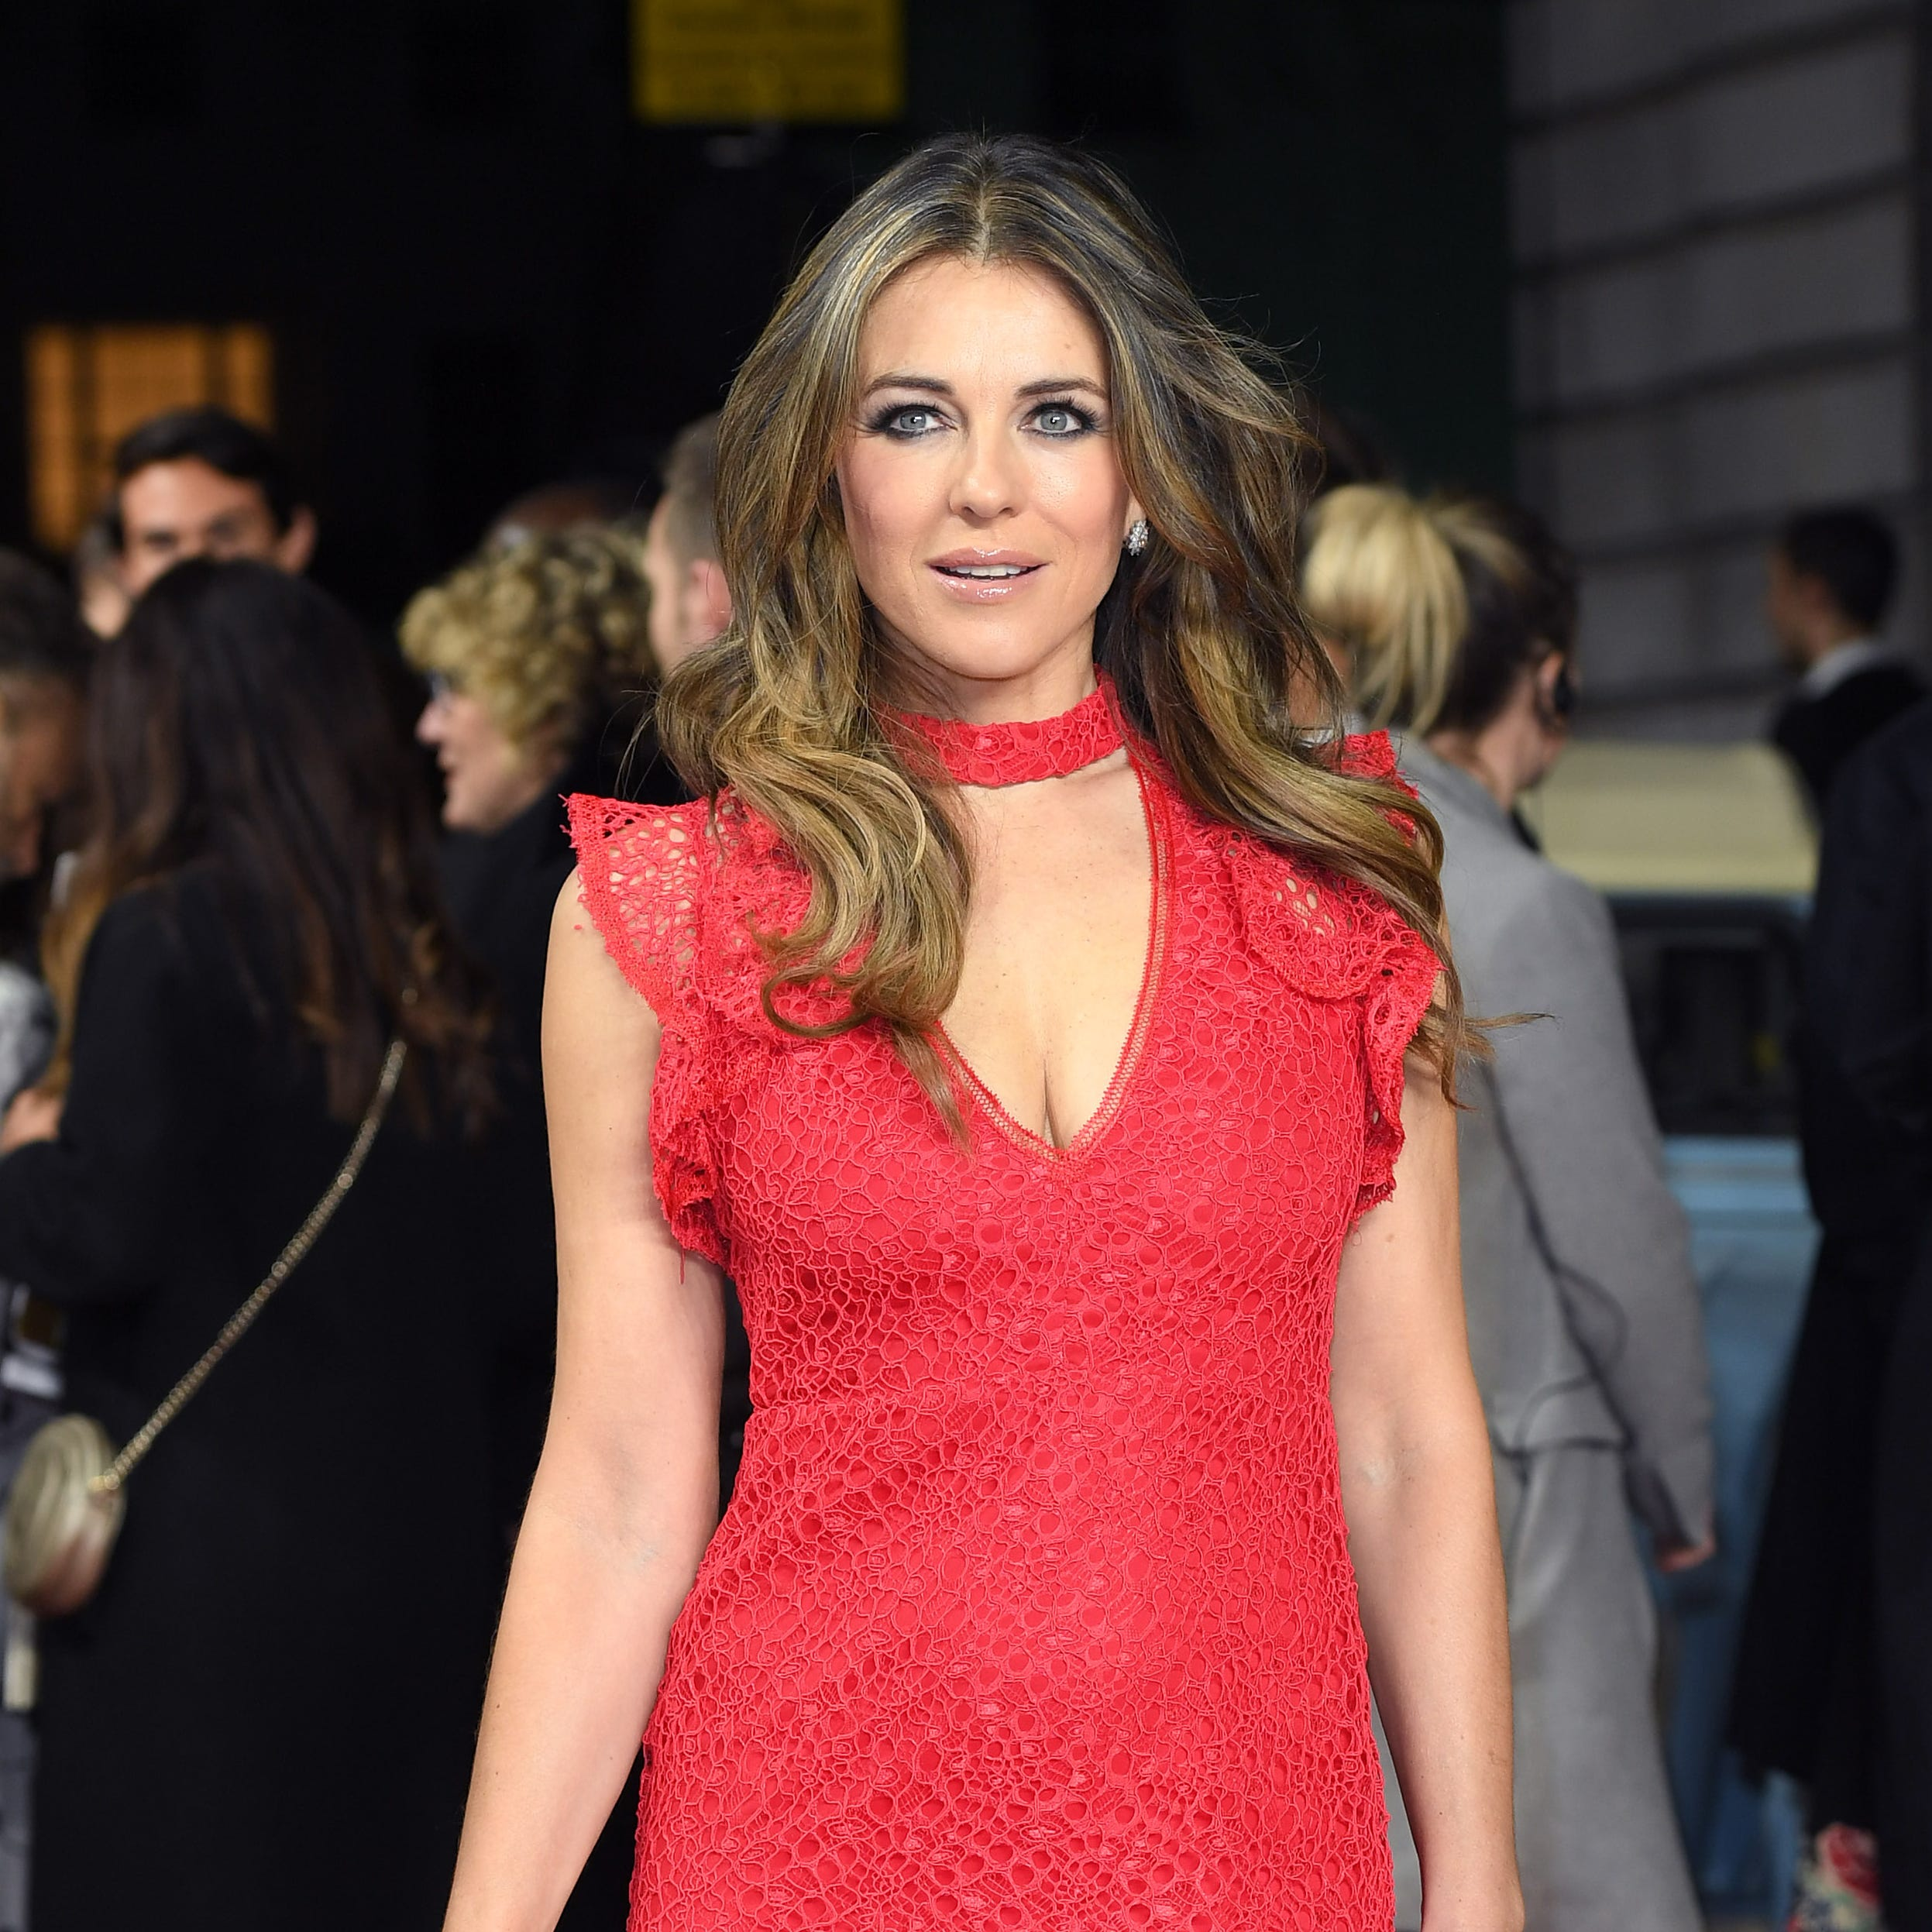 Elizabeth Hurley attends the World Premiere of 'The Time Of Their Lives' on March 8, 2017 in London.